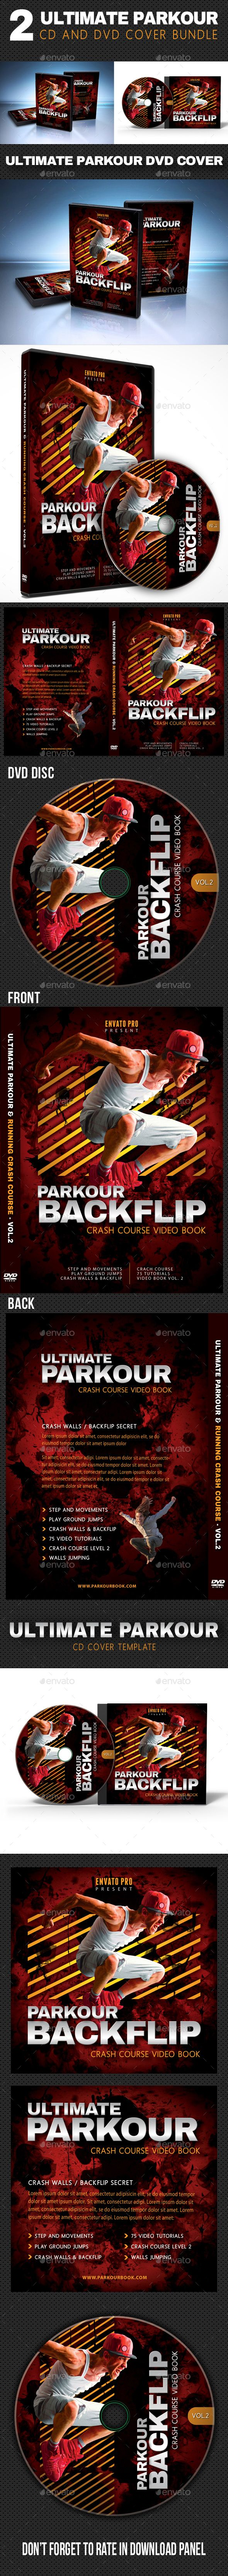 2 in 1 Ultimate Parkour CD and DVD Cover Bundle 02